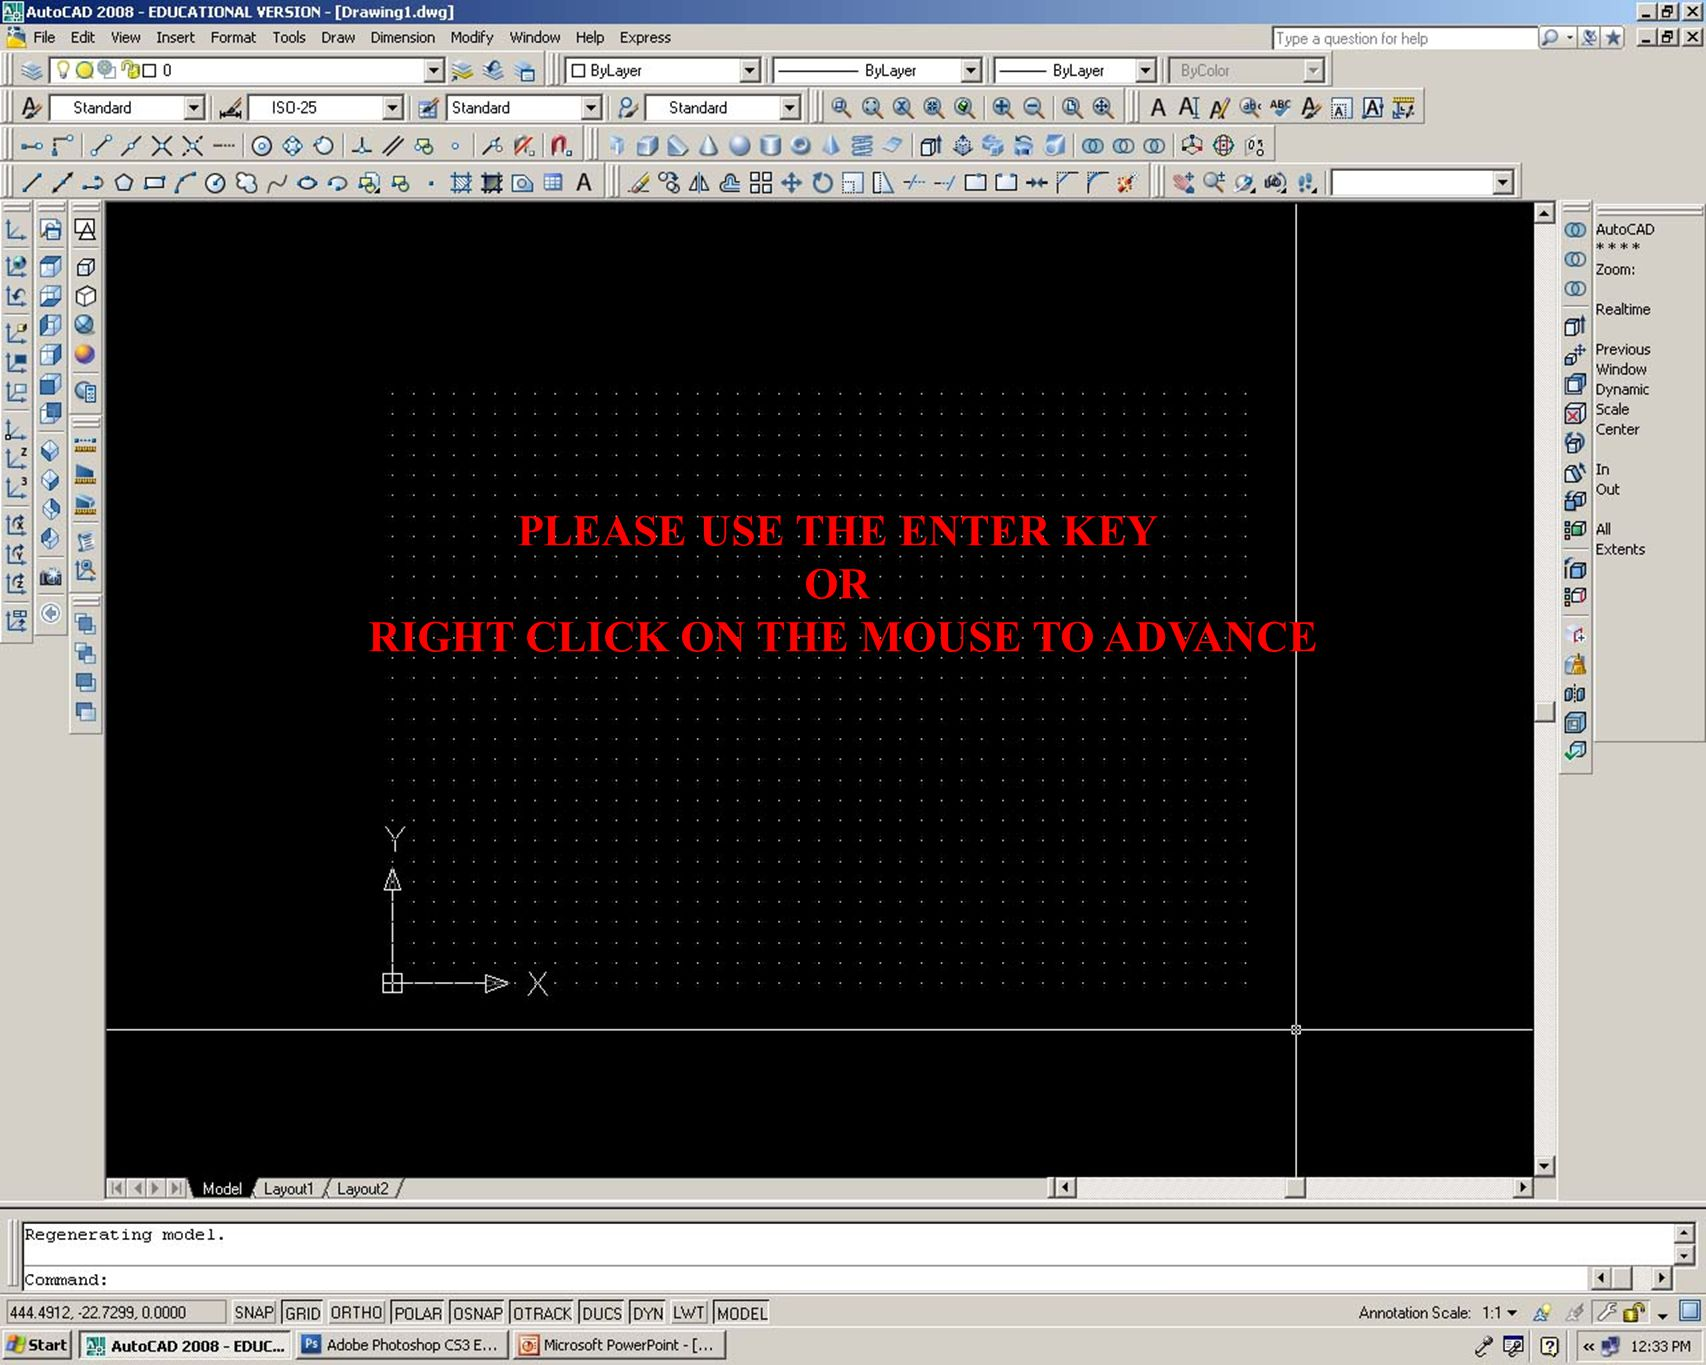 PLEASE USE THE ENTER KEY OR RIGHT CLICK ON THE MOUSE TO ADVANCE